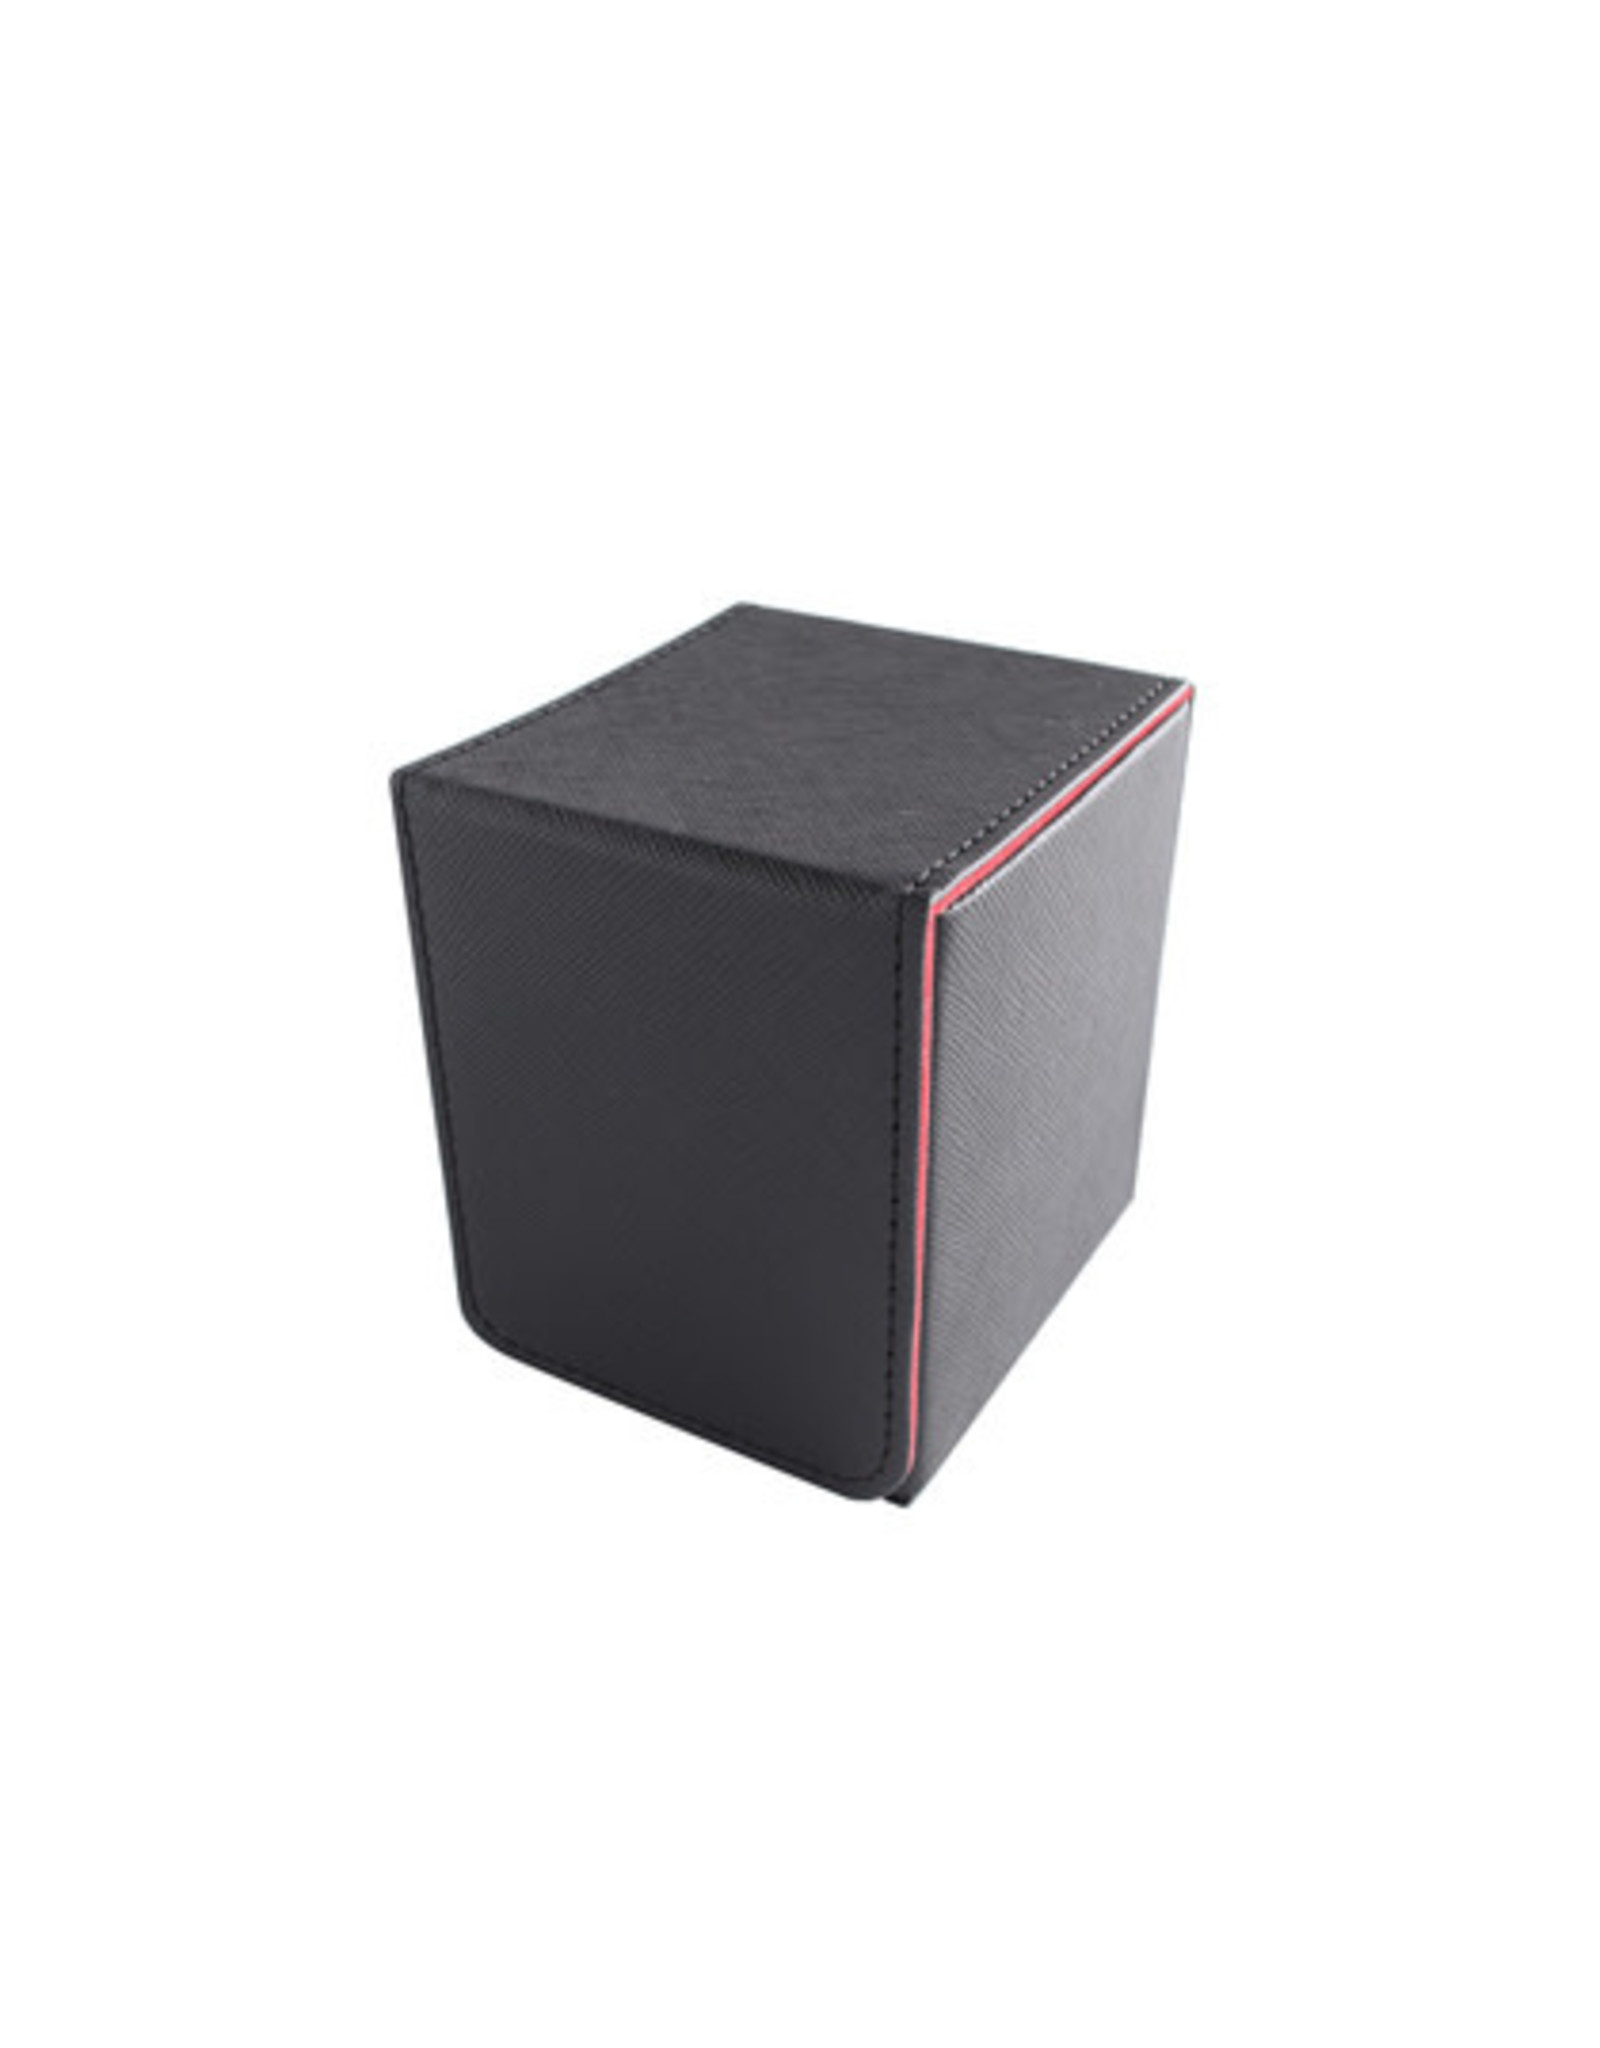 Dex Protection Dex Protection: Creation Small Black Deck Box